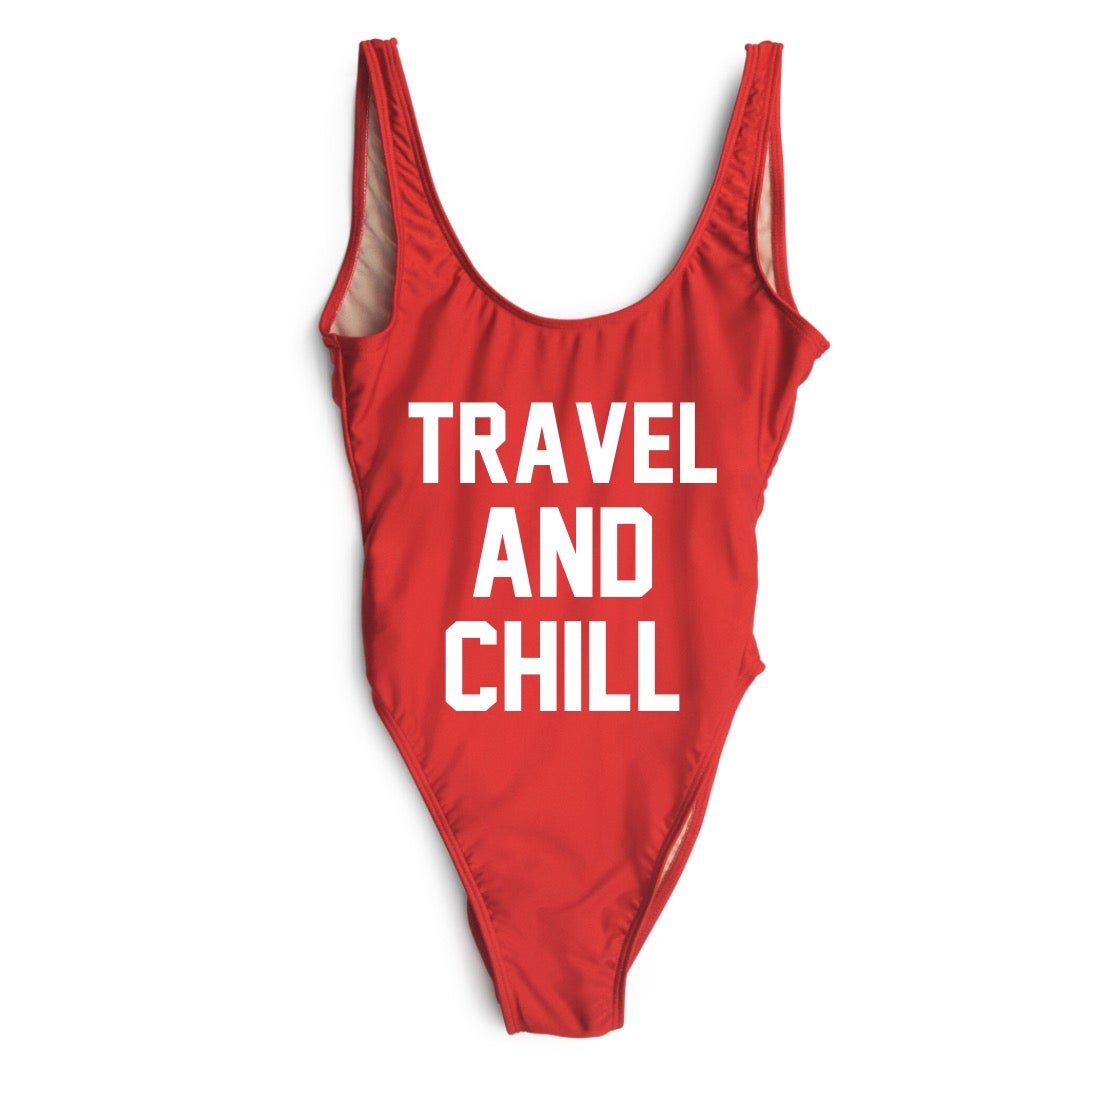 Image of TRAVEL AND CHILL SWIMSUIT (up to 3x)